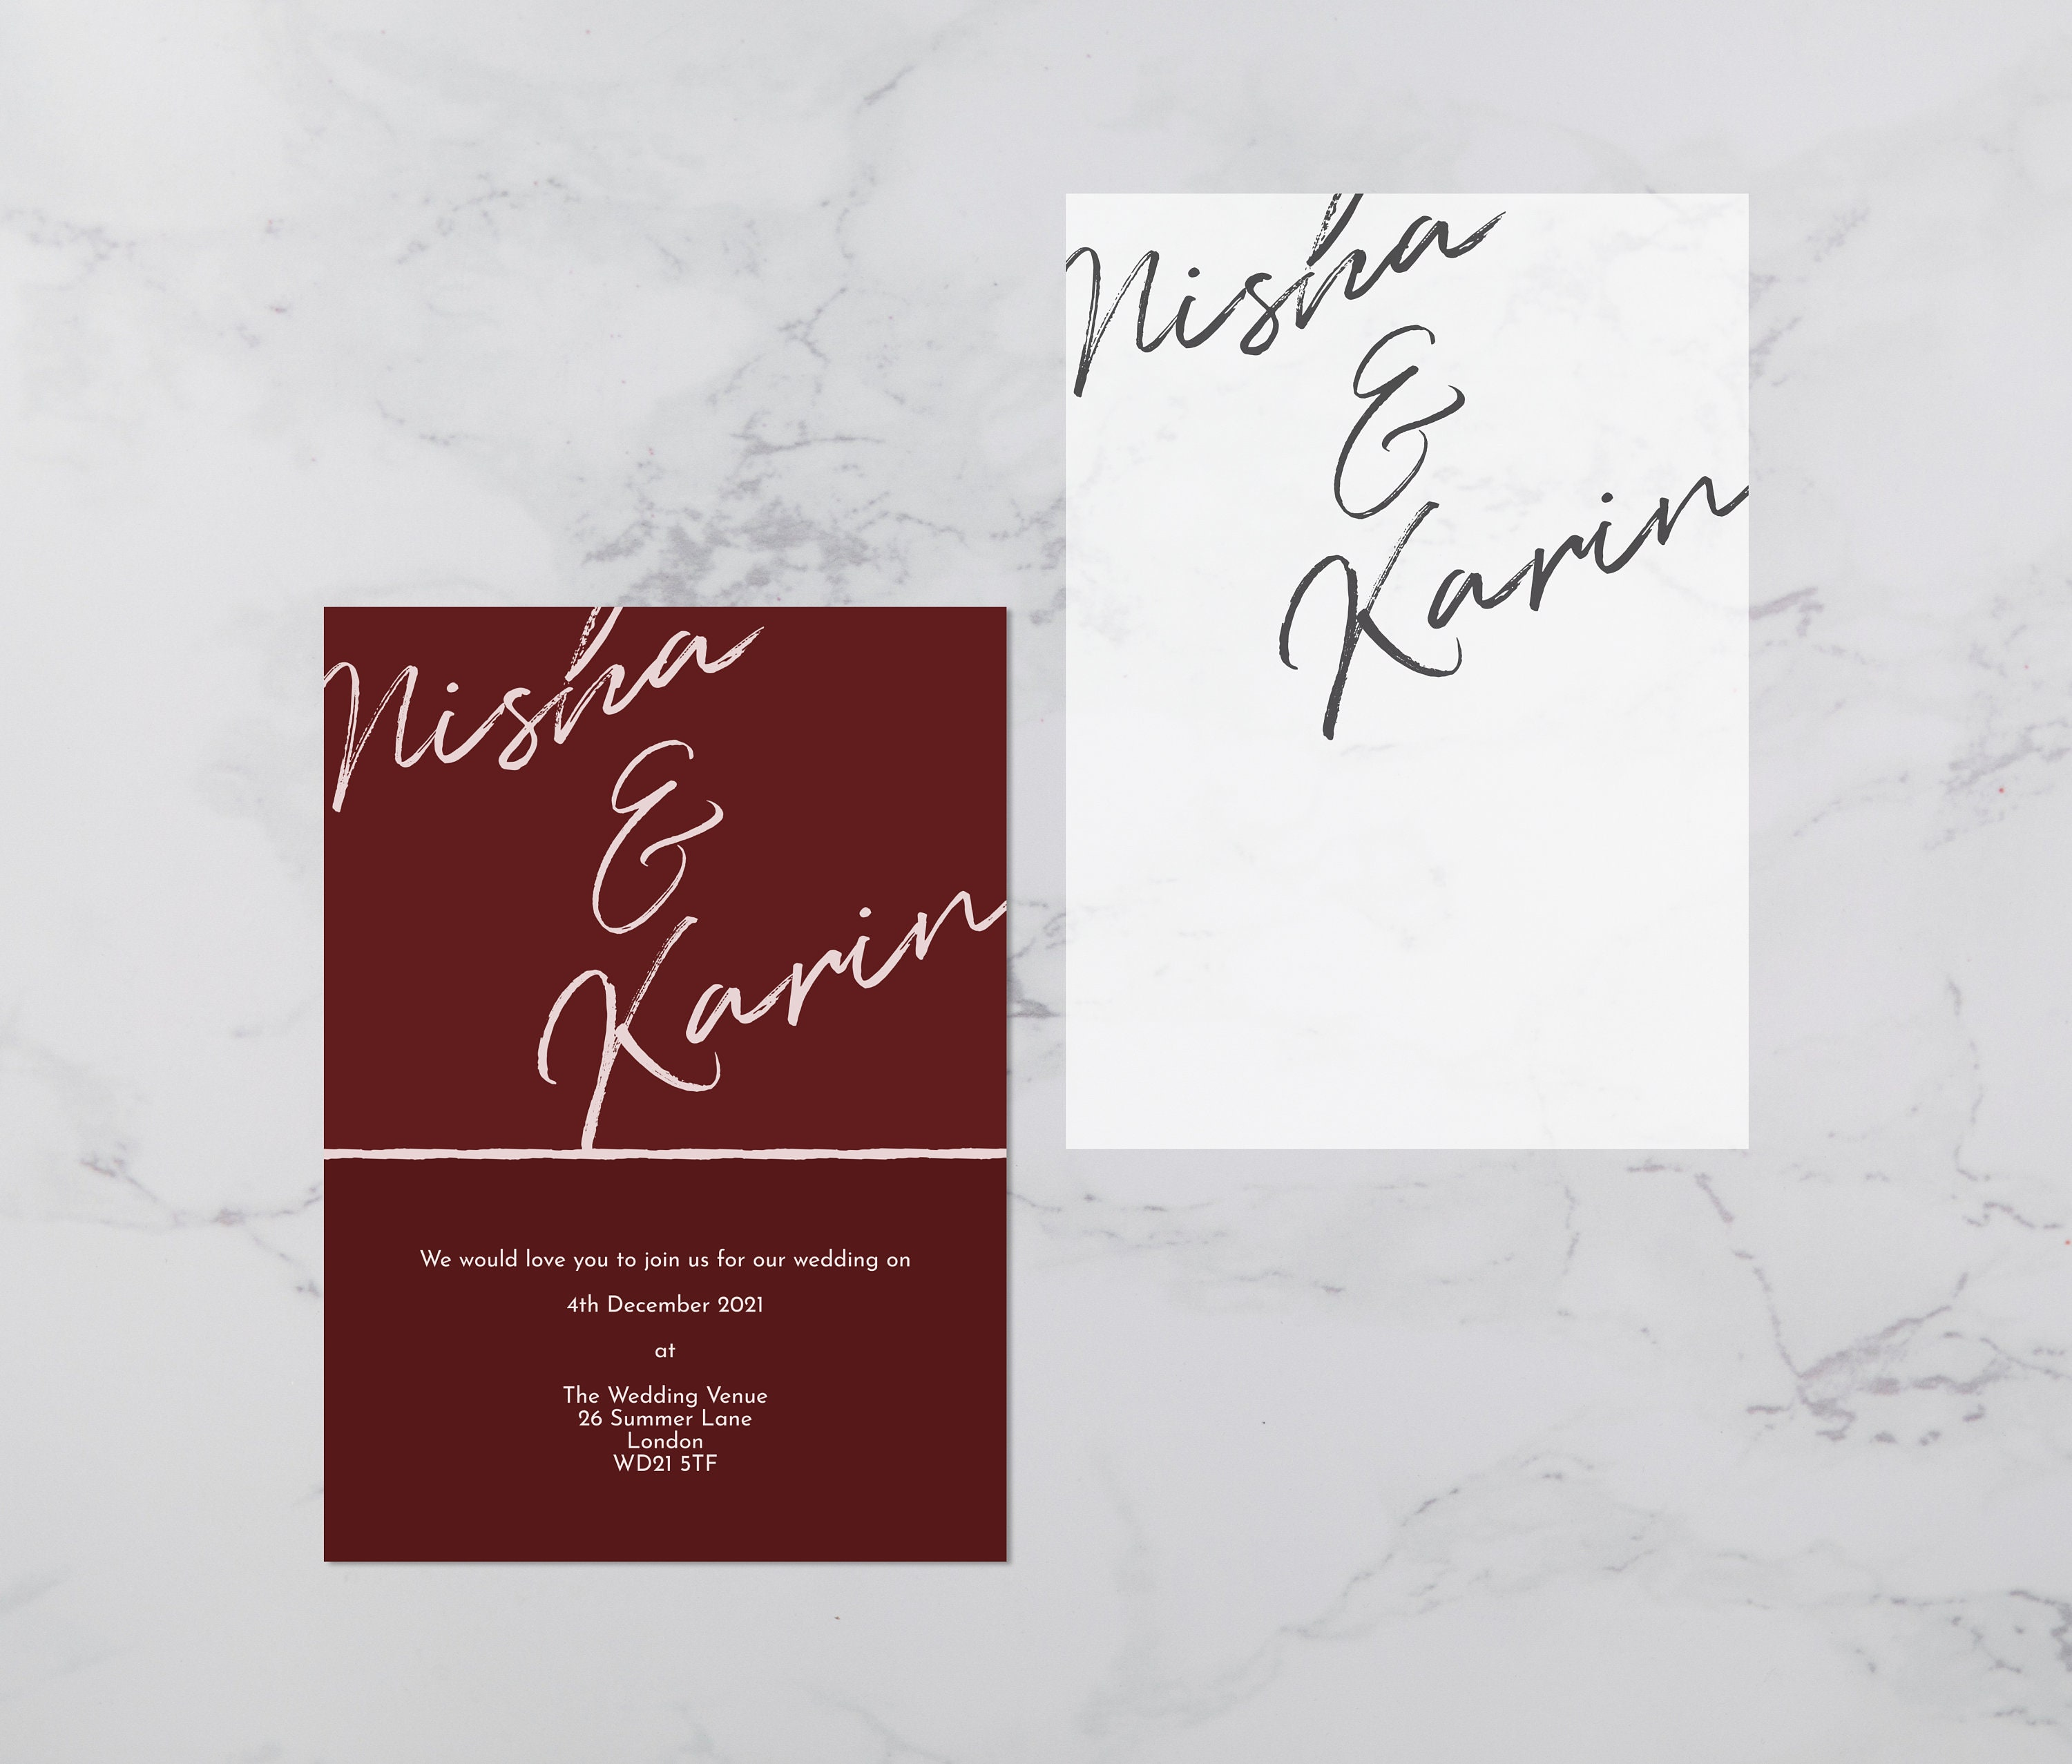 Flat lay photograph showing a burgundy wedding invitation and the vellum overlay sheet separately.